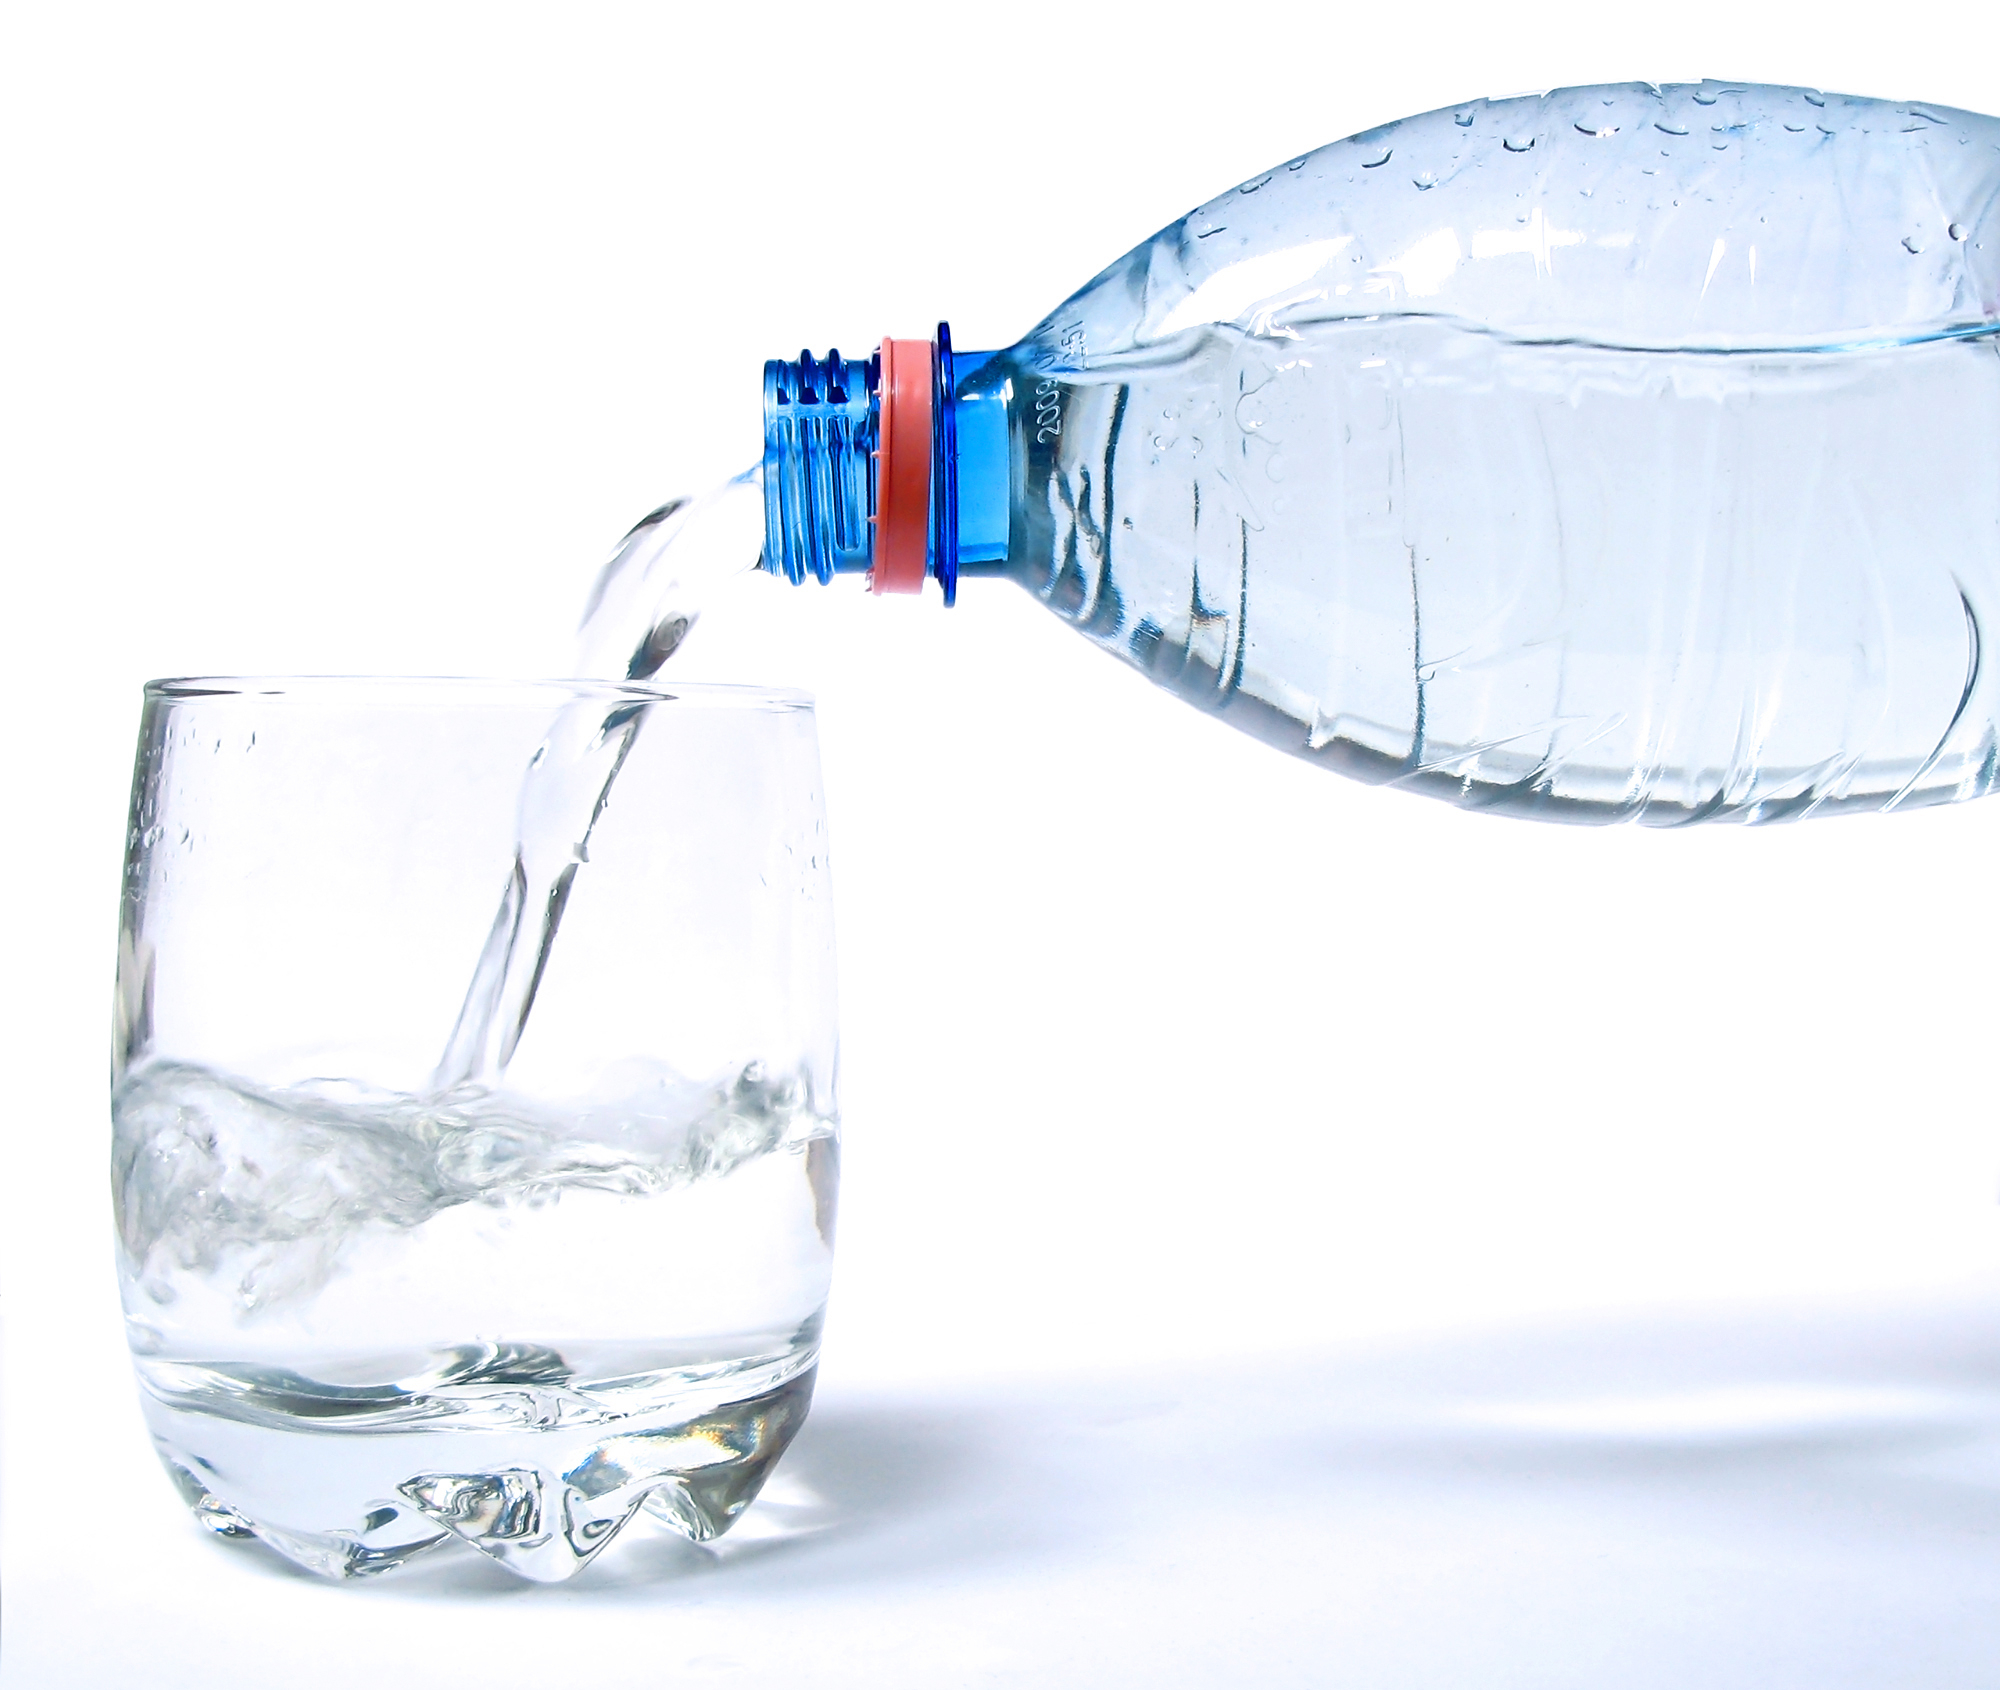 Does Your Bottled Water Contain Fluoride?